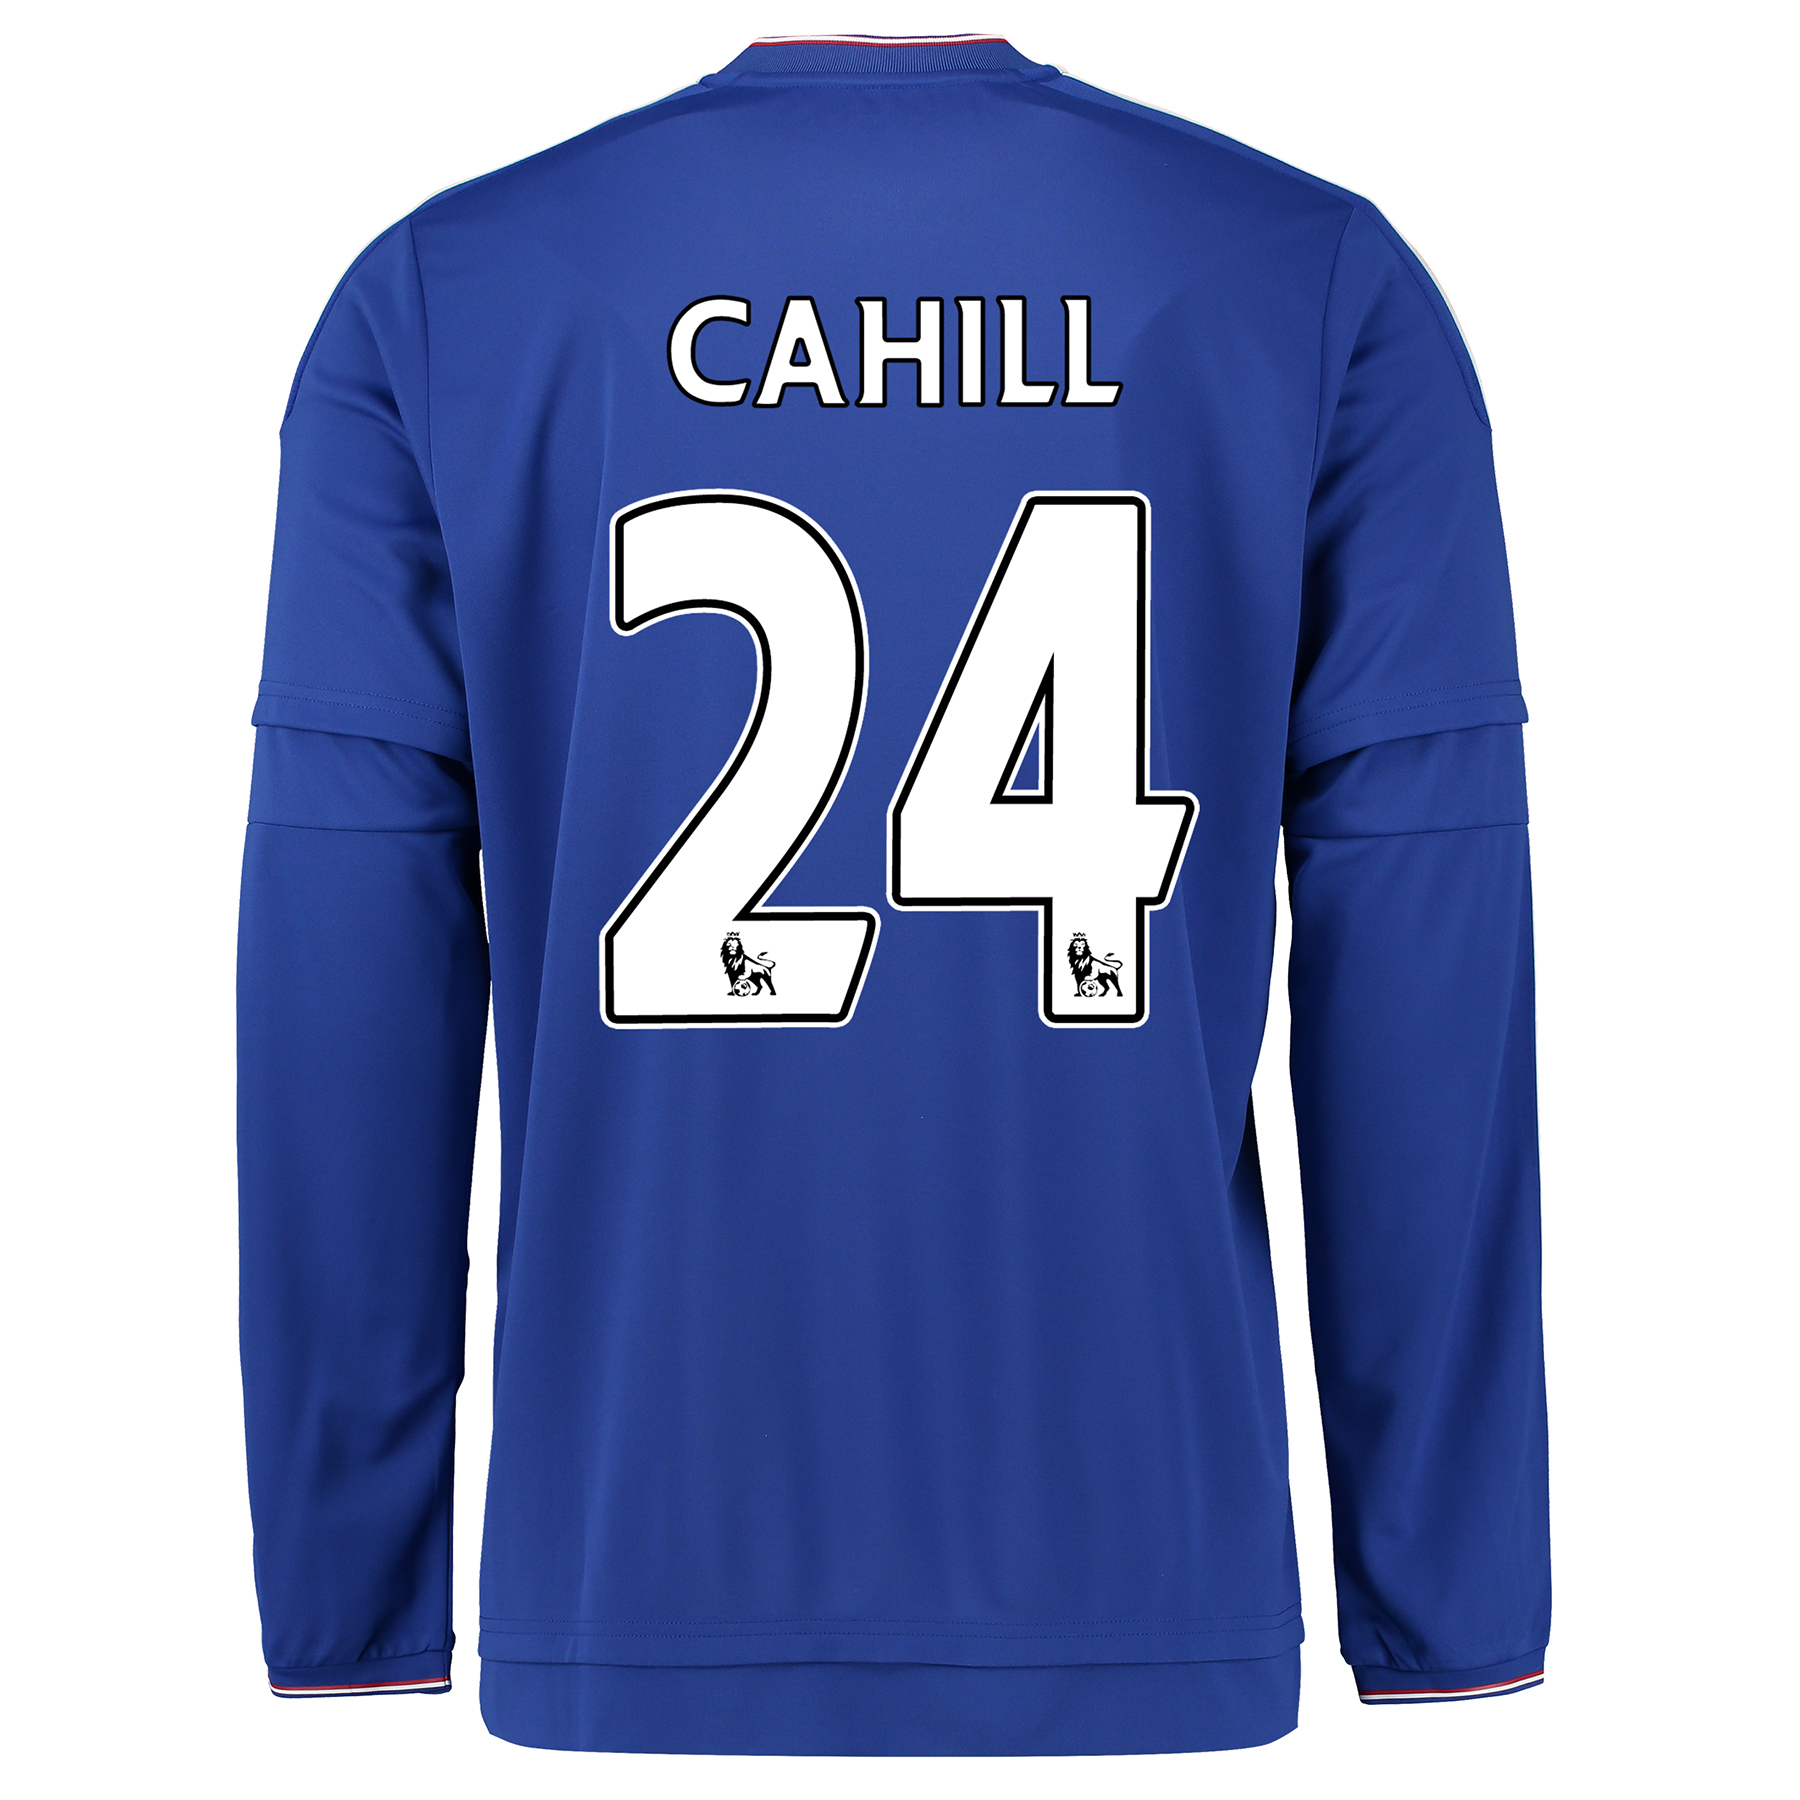 Chelsea Home Shirt 2015/16 - Long Sleeve Blue with Cahill 24 printing